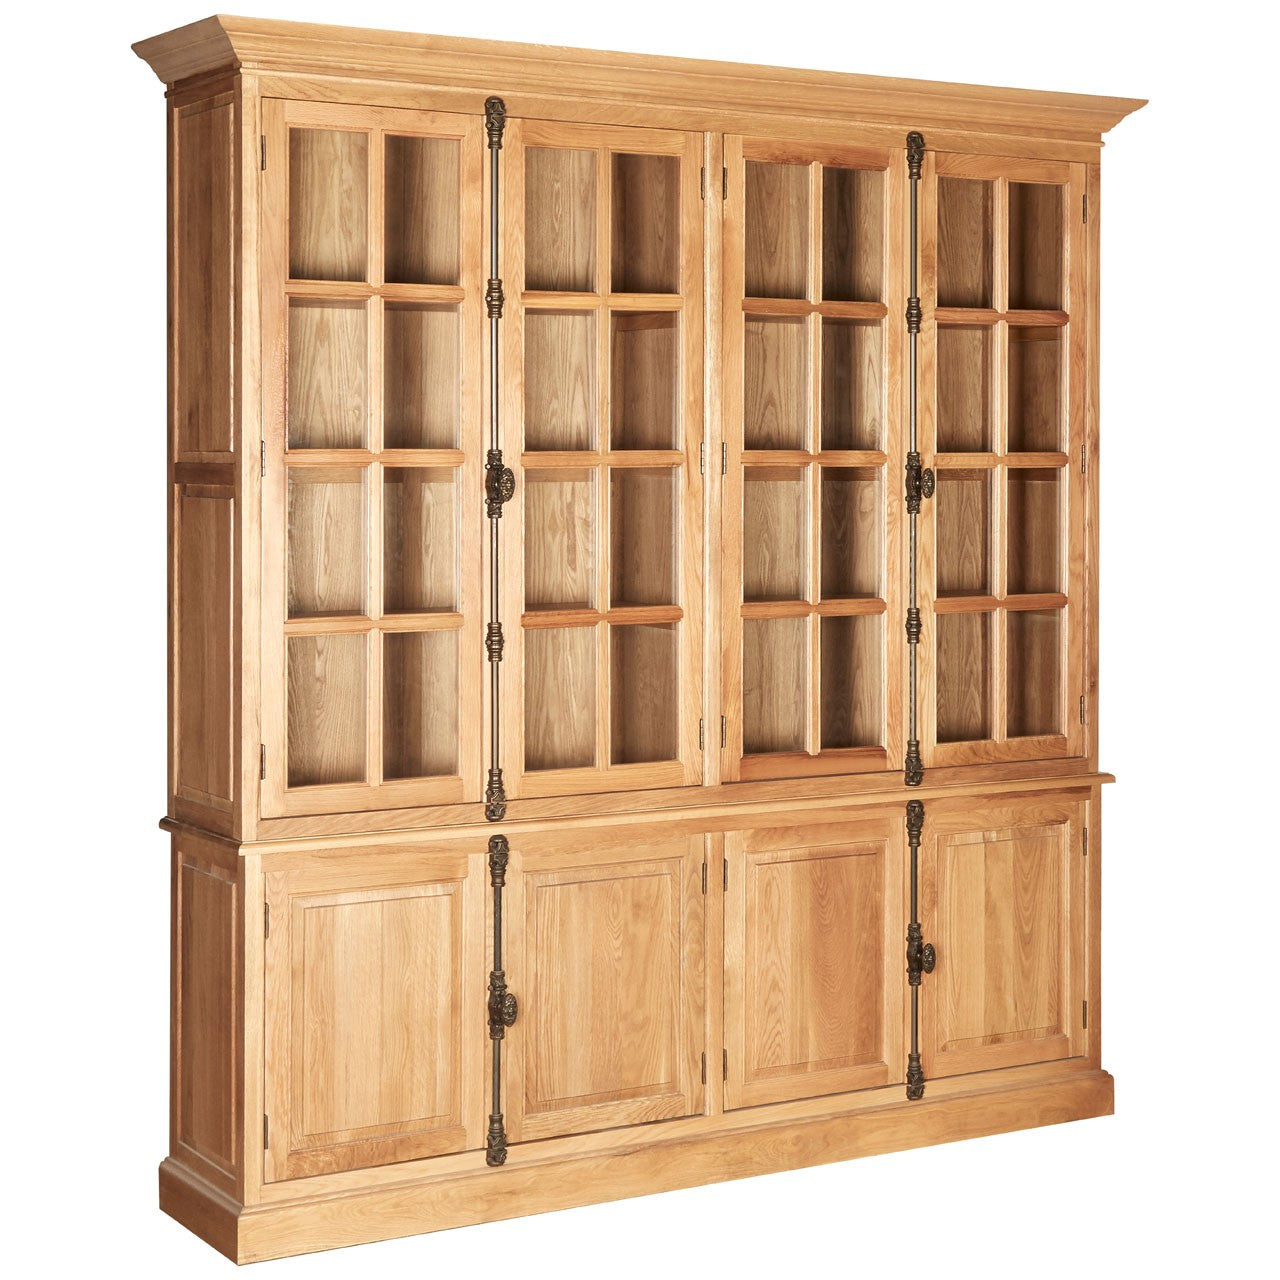 Lyon Cabinet With 6 Shelves